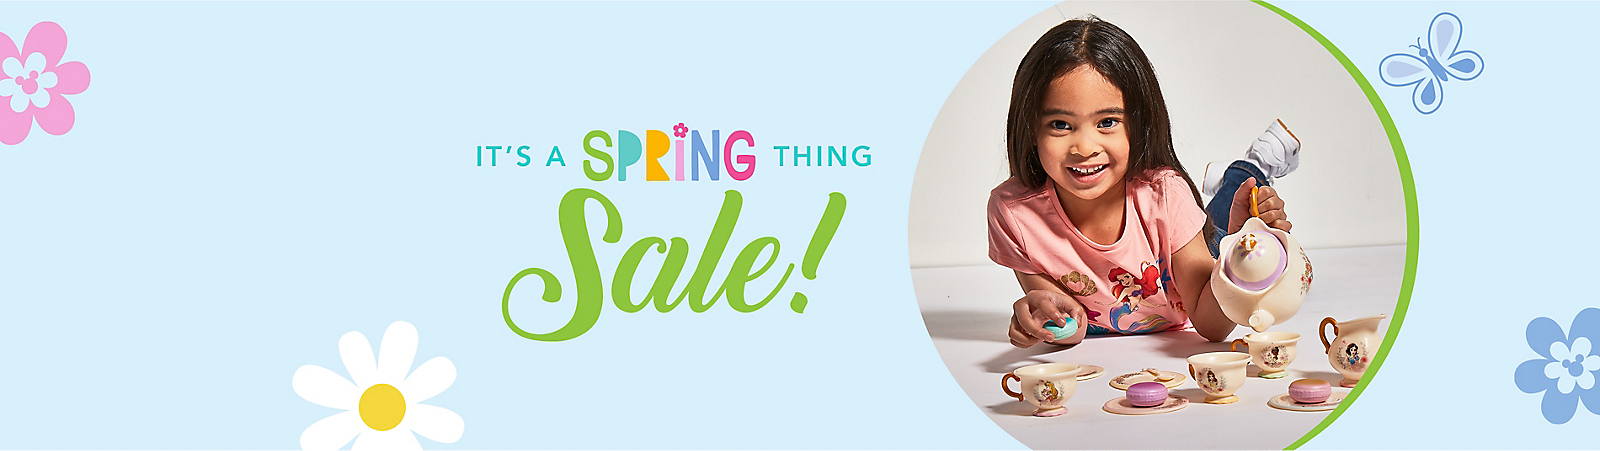 Background image of Spring Savings